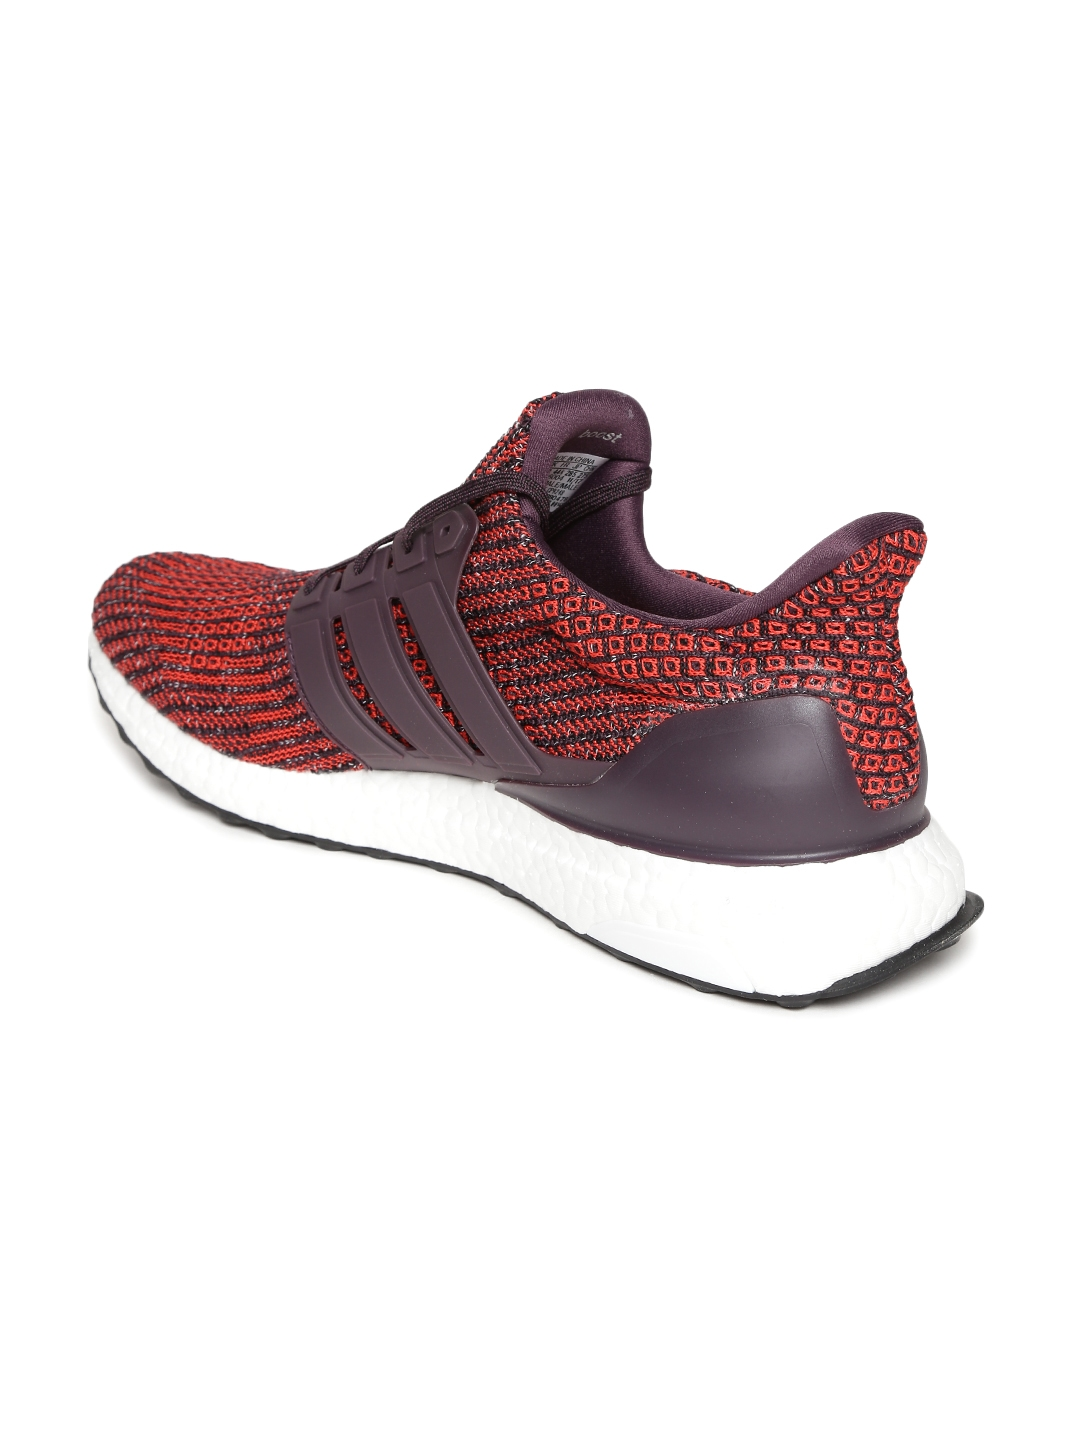 80e1e271ae289 Buy Adidas Men Red   Brown Ultraboost Woven Design Running Shoes ...